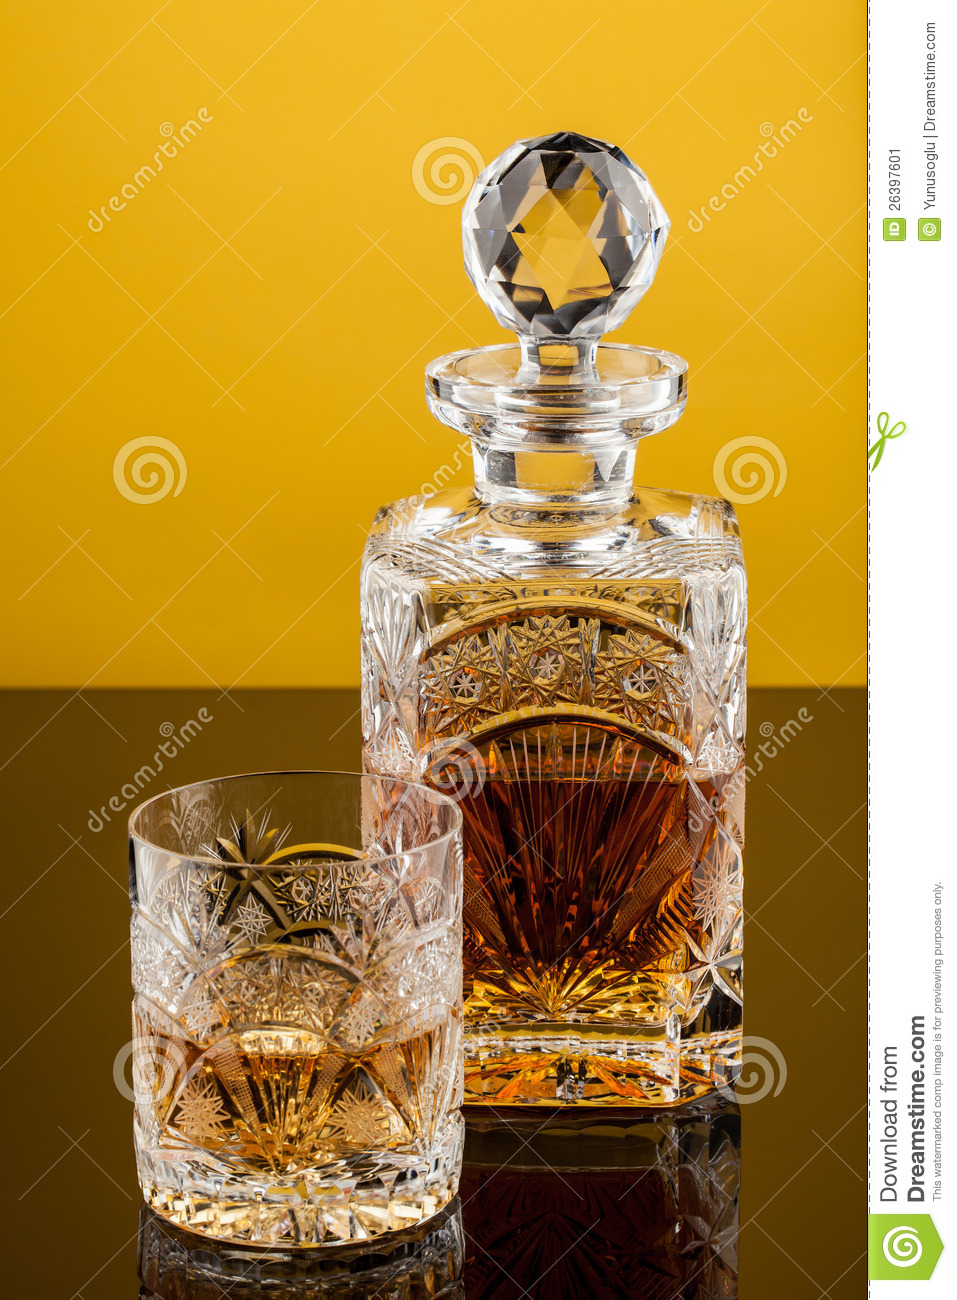 Alcohol Content In Glass Of Whisky